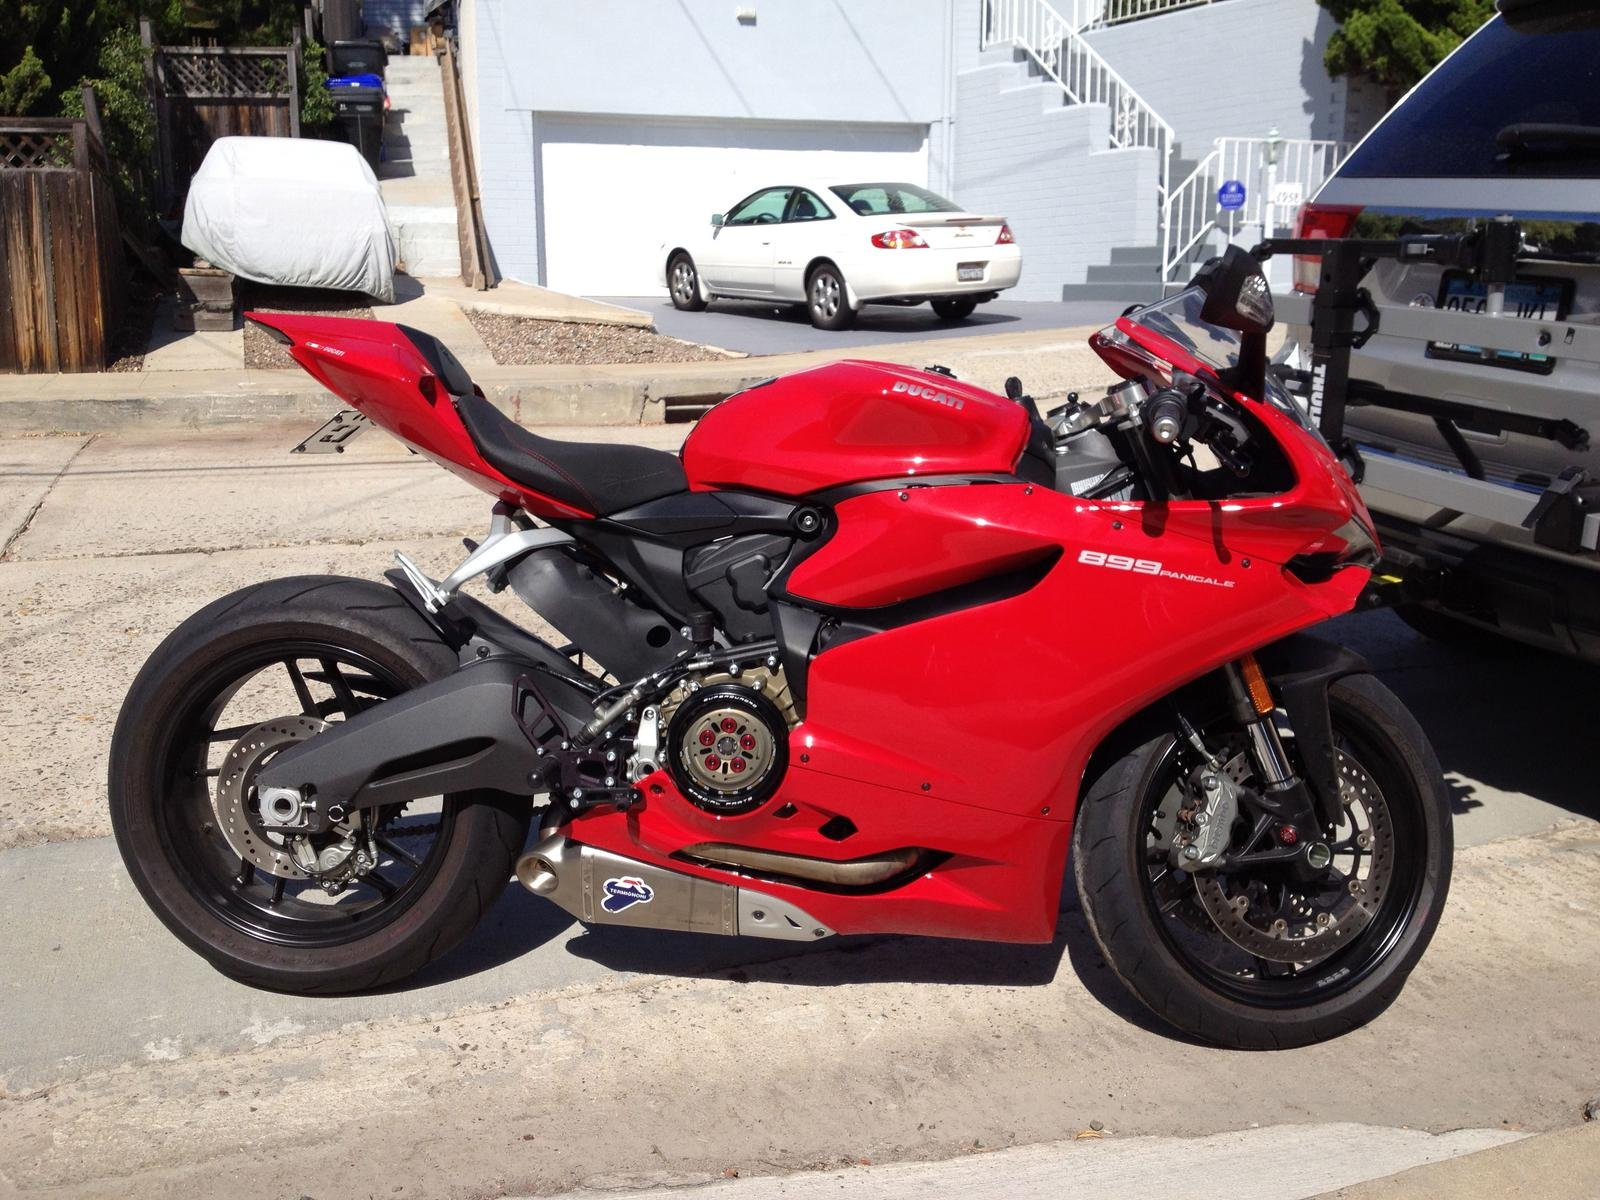 14 899 panigale for sale- extras low miles!!! - ducati 899